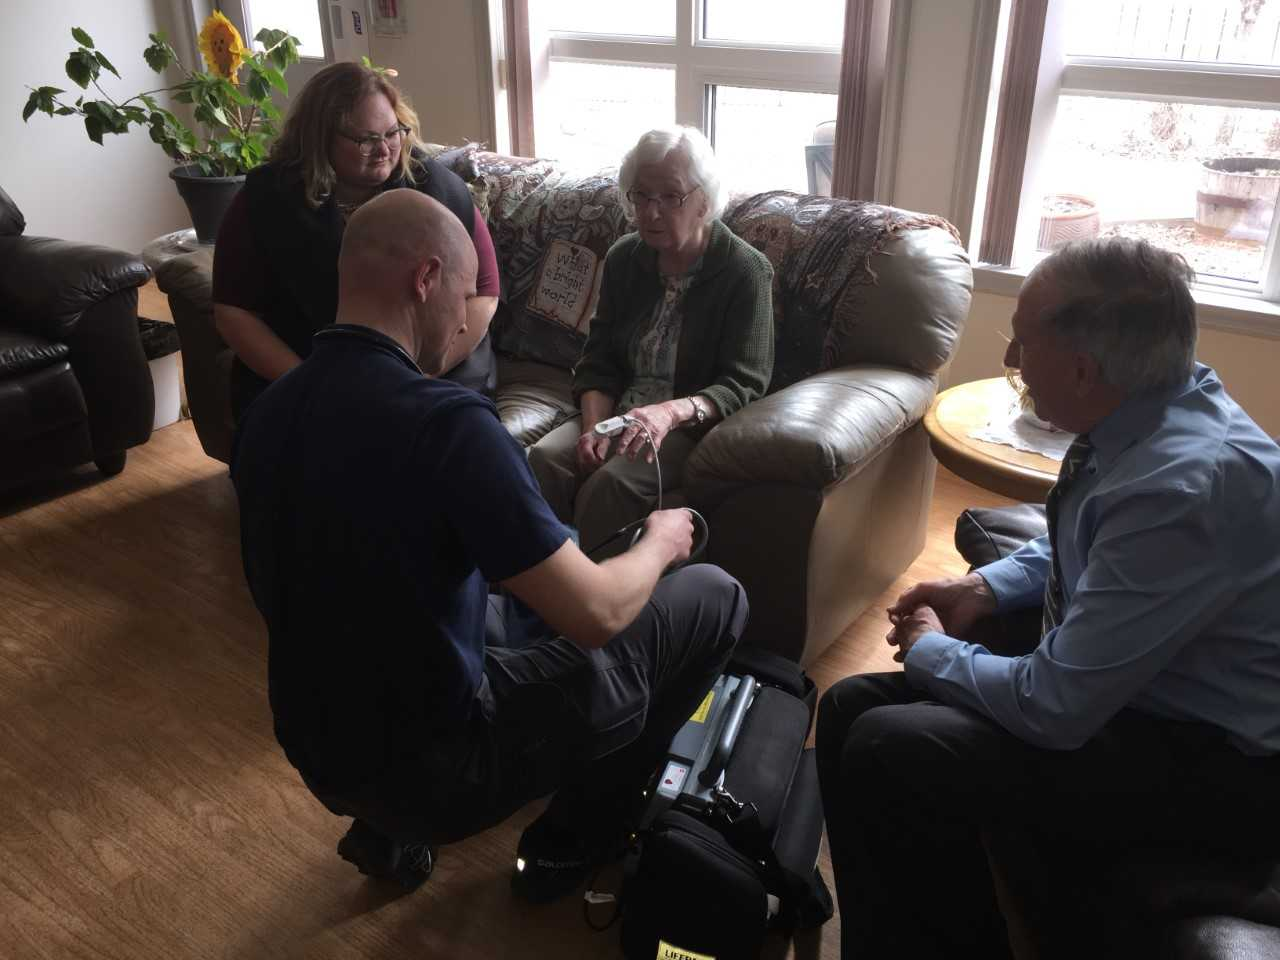 HEALTH MINISTER VISITS CAMROSE TO CHECK UP ON THE COMMUNITY PARAMEDICS PROGRAM